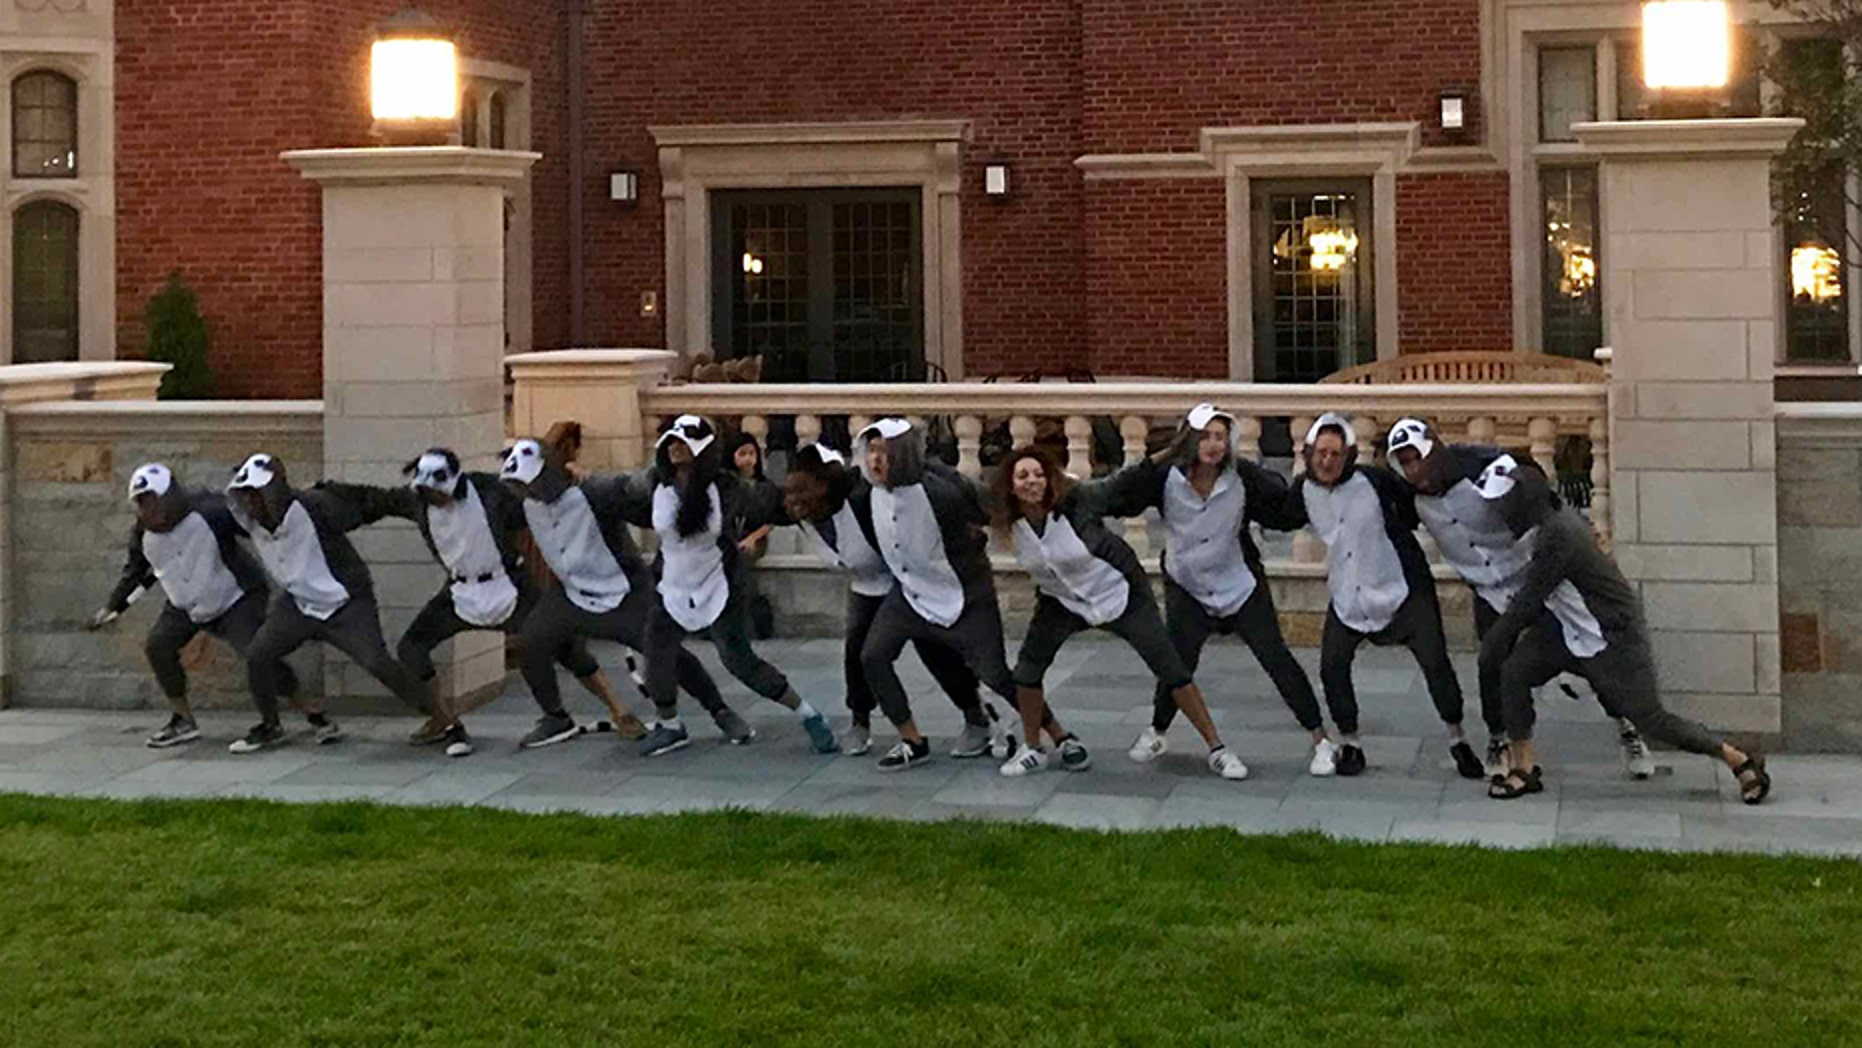 Students at Yale University's newly-opened Pauli Murray residential college put on lemur costumes while performing a chant and dance.